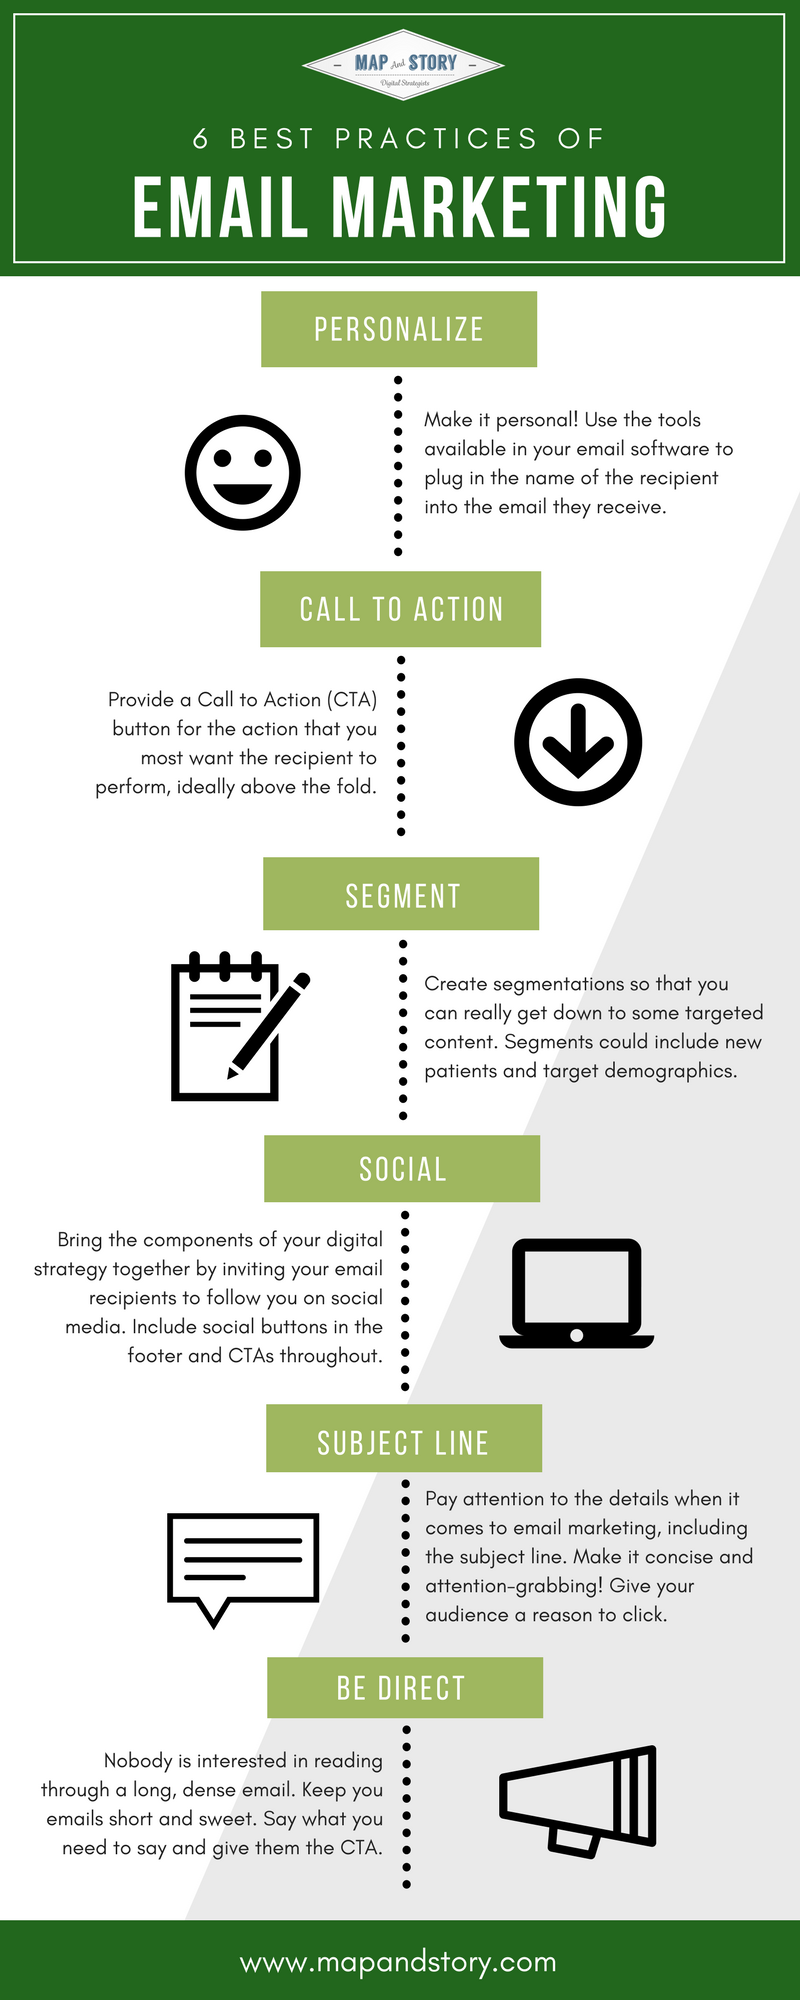 email, marketing, practice, tips